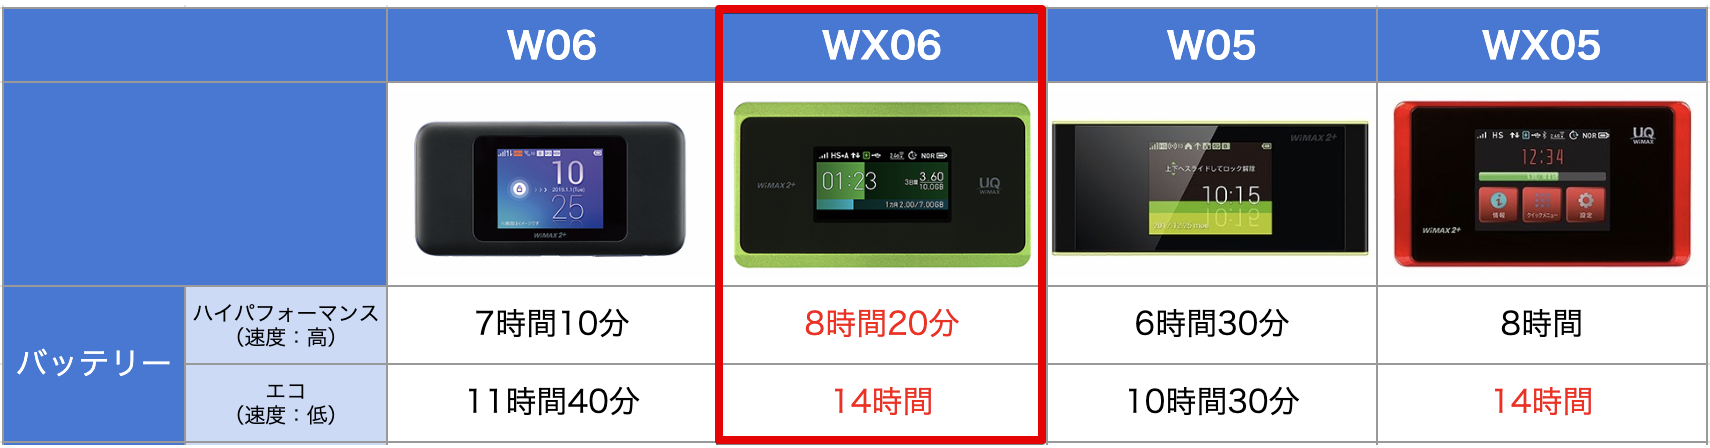 WiMAX端末バッテリーの長さ比較